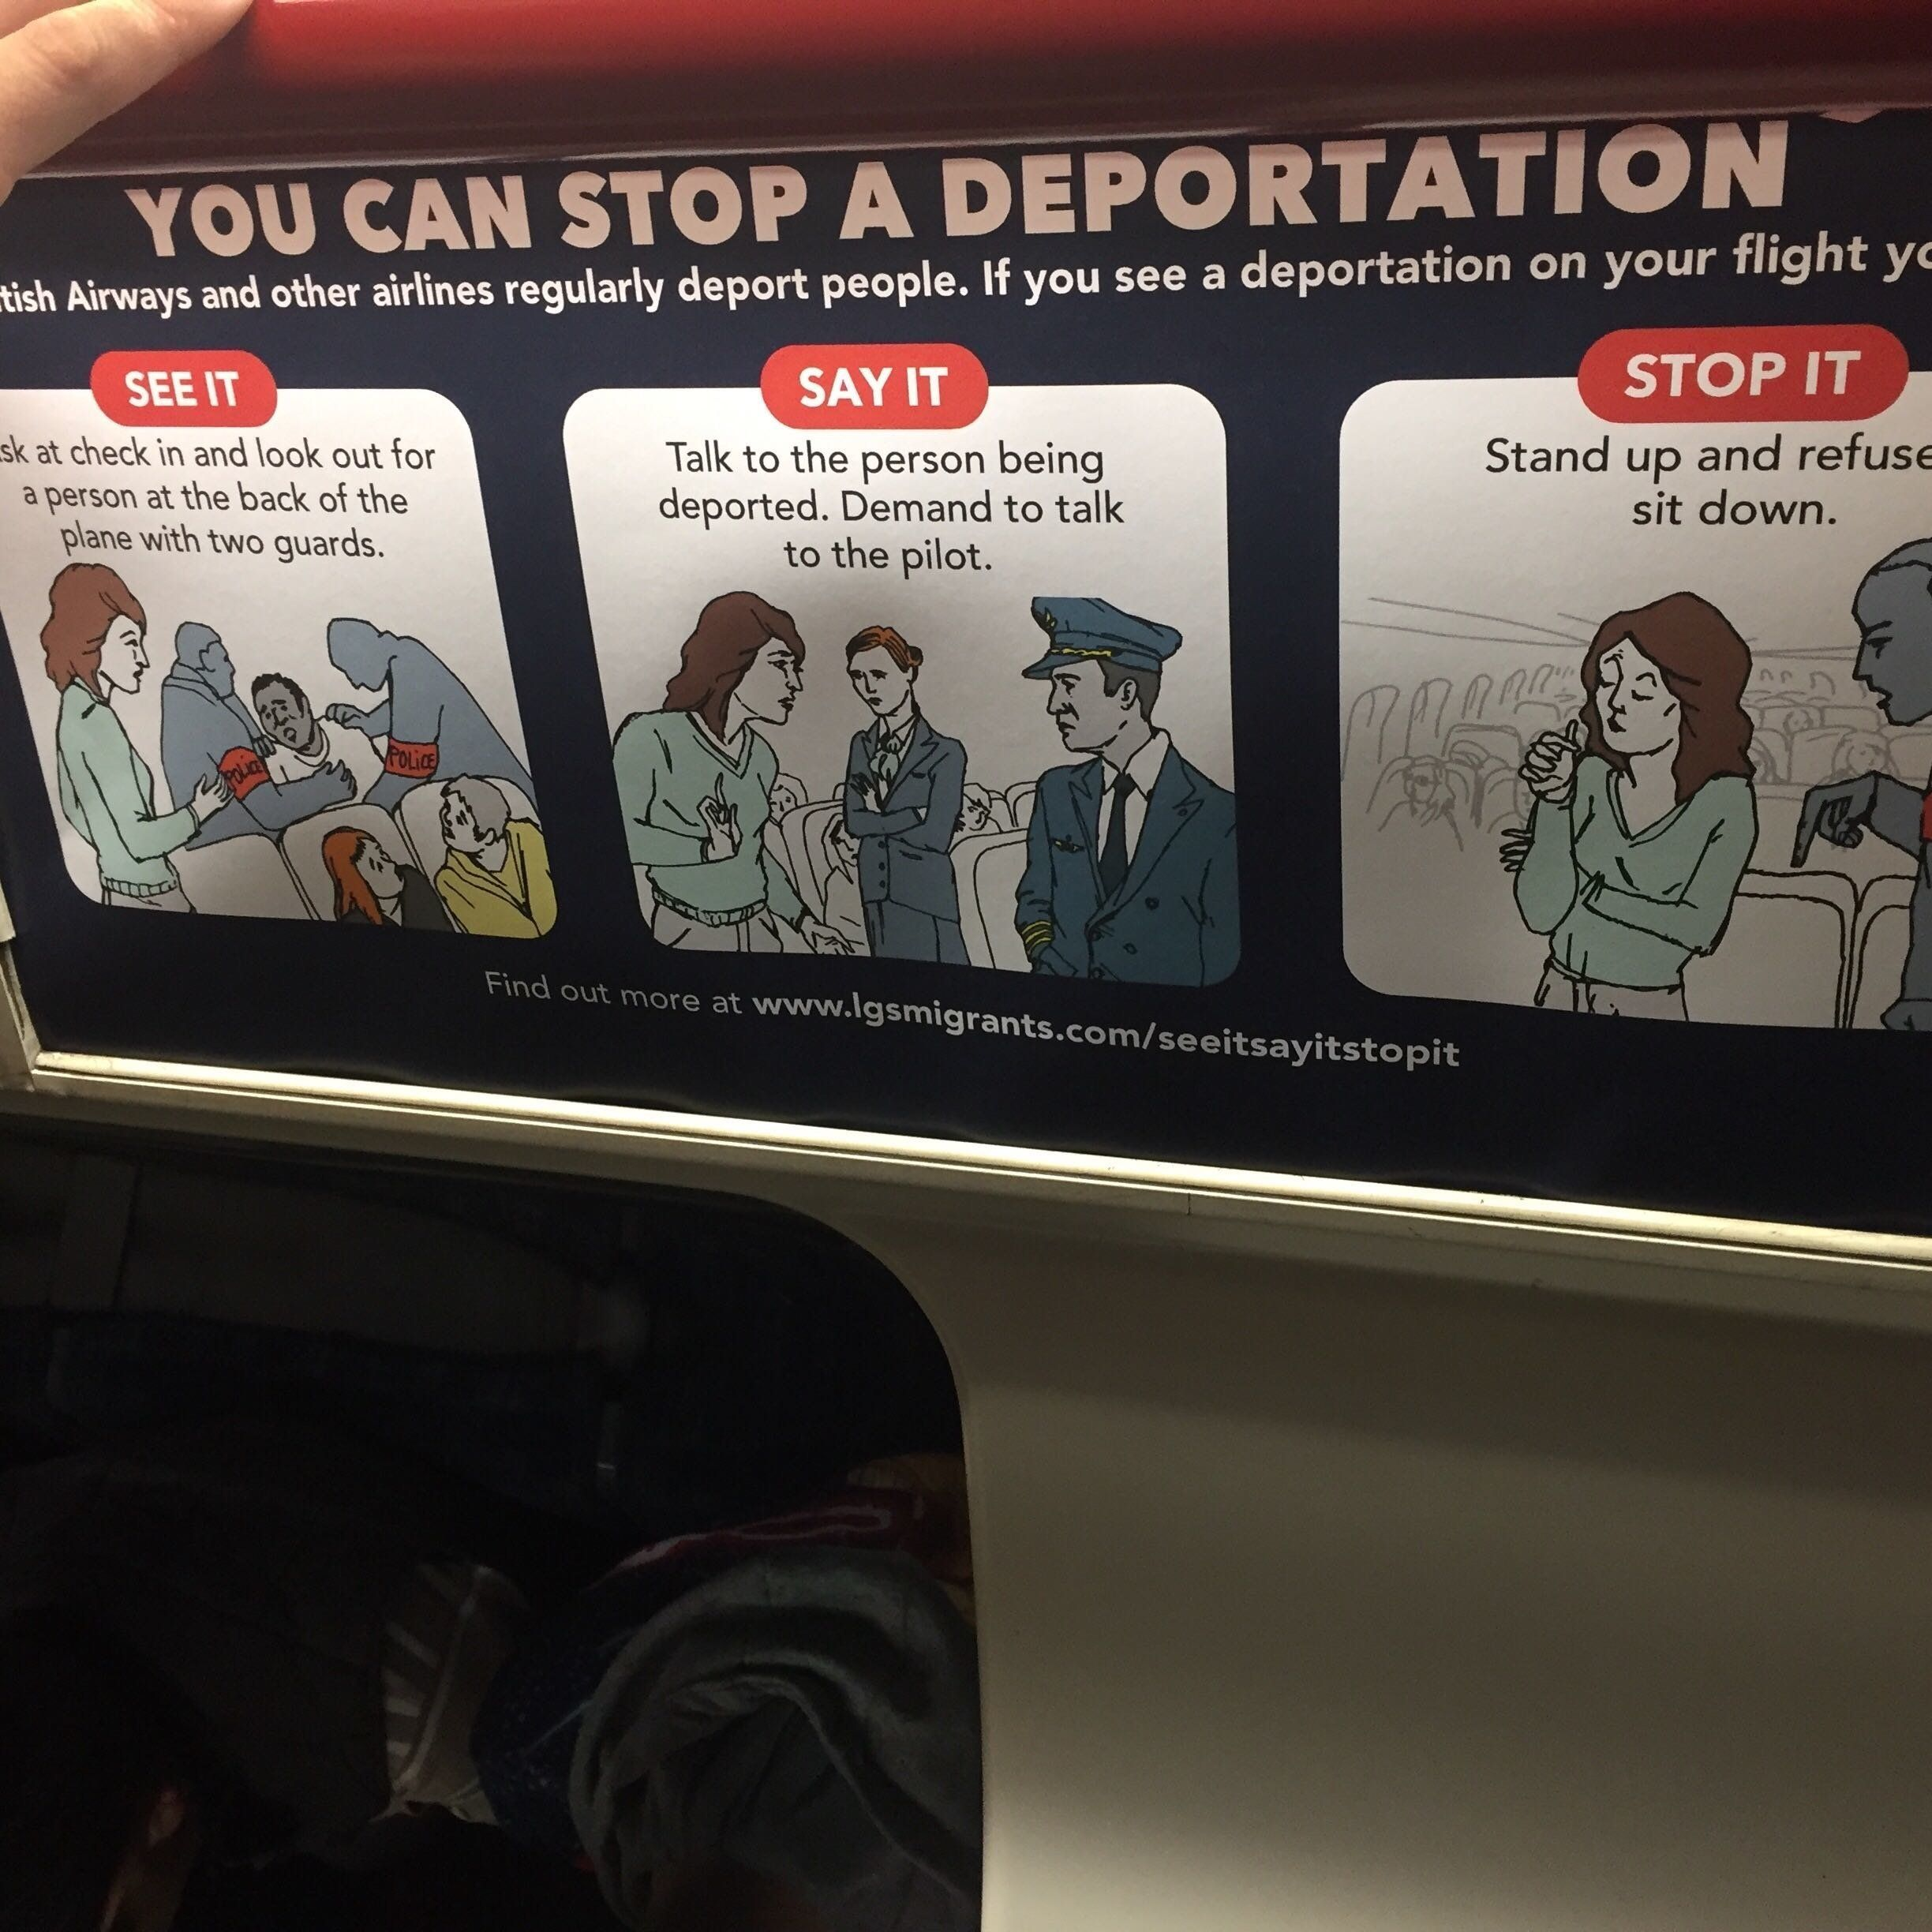 Hundreds Of 'Hacked' Tube Adverts Tell Passengers How To Stop People Being Deported On